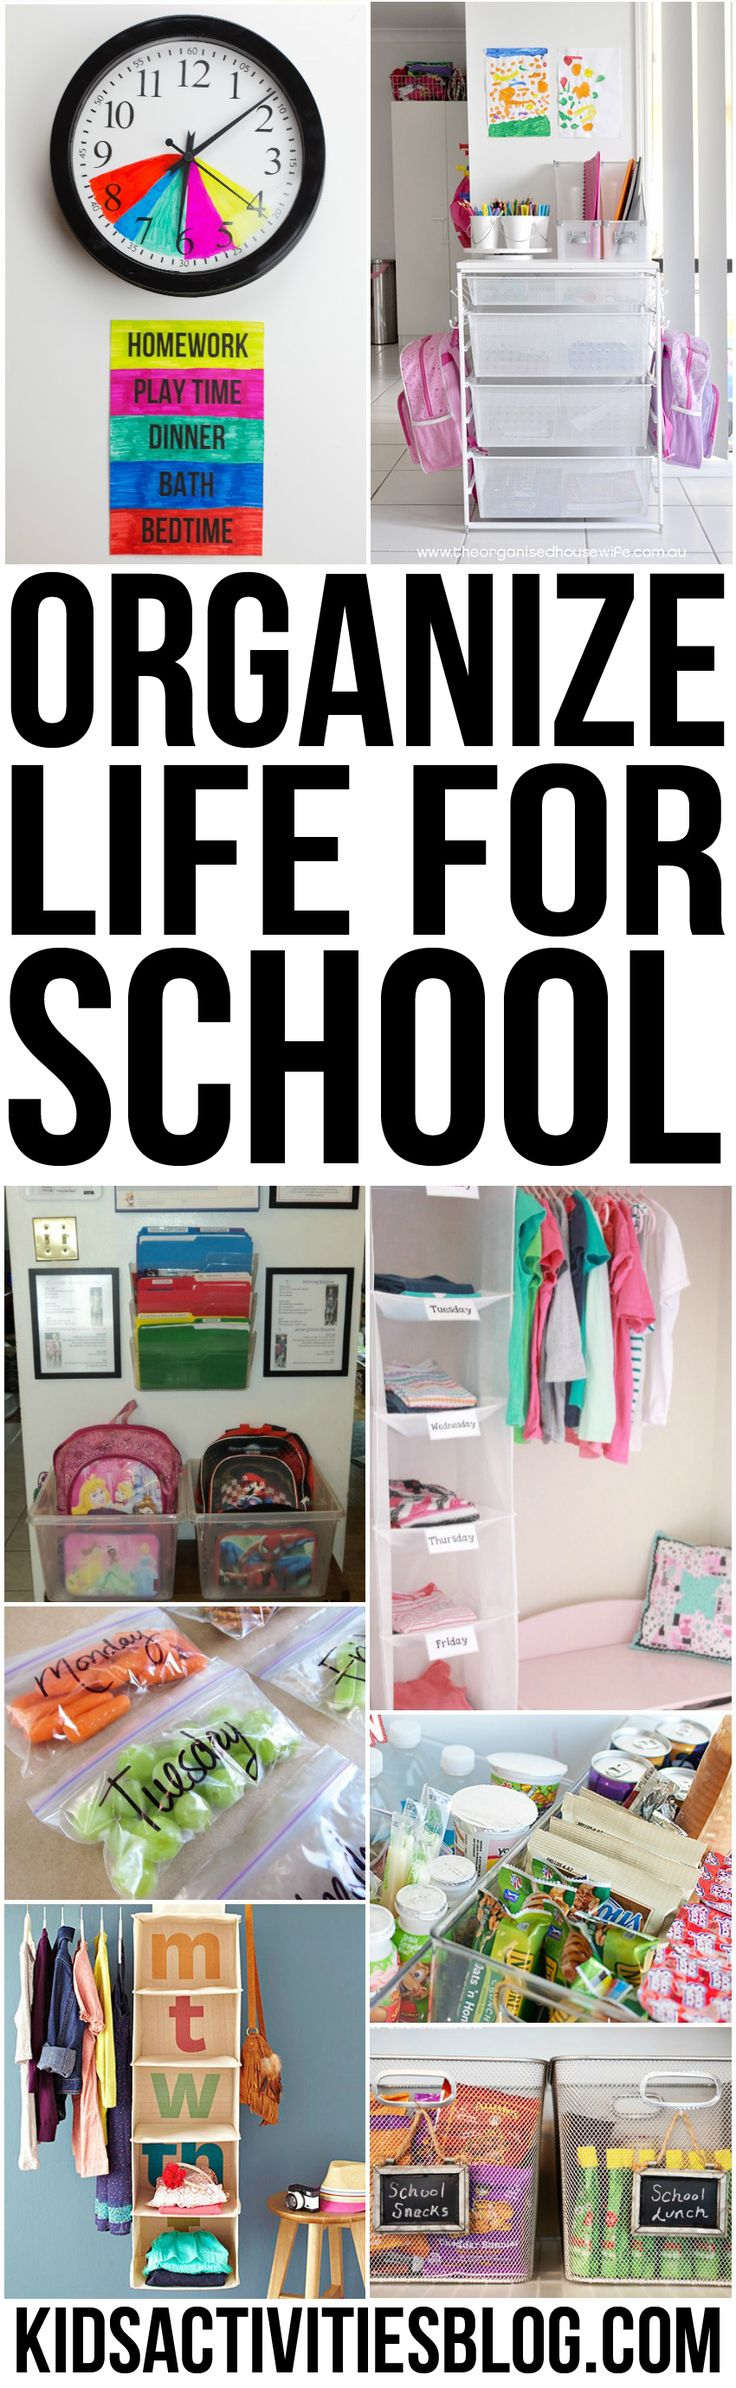 "We are beginning kindergarten with two of my kiddos and are busy organizing life for school. I'd love to tell you I have our learning routine or system together... but I don't! This past week, I scoured the internet in search of tips to help us as we adapt to a life of learning with kiddos in preschool and kindergarten. Here are a few of the ""must-do-one-day"" tips I have found. via @hollyhomer"